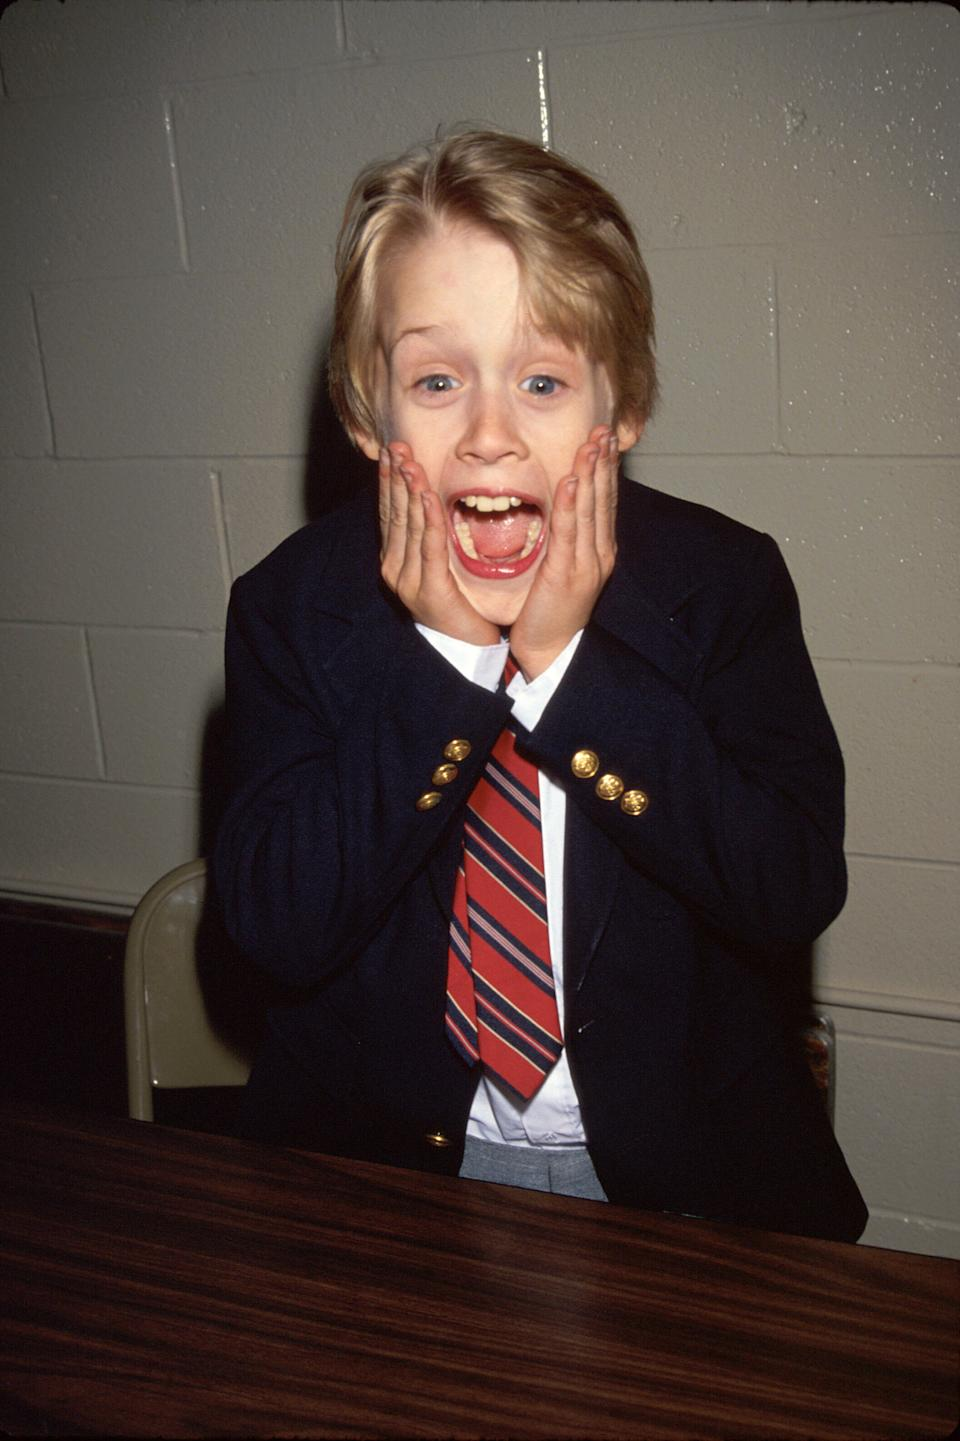 Actor Macaulay Culkin making face like his Home Alone character.  (Photo by Time Life Pictures/DMI/The LIFE Picture Collection via Getty Images)